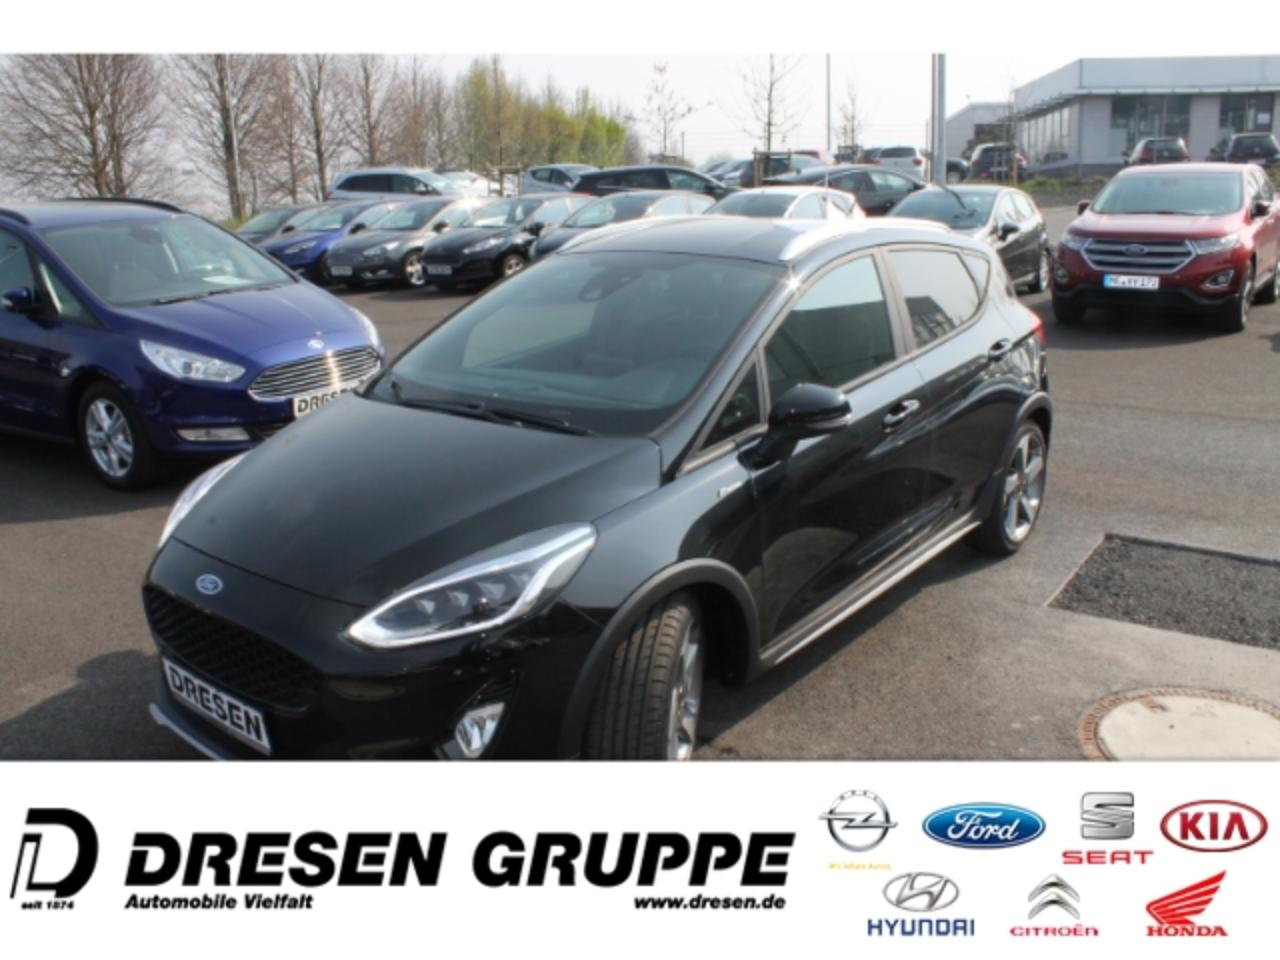 Ford Fiesta Active Plus 1.0 Navi+LED+Tempomat+Kamera